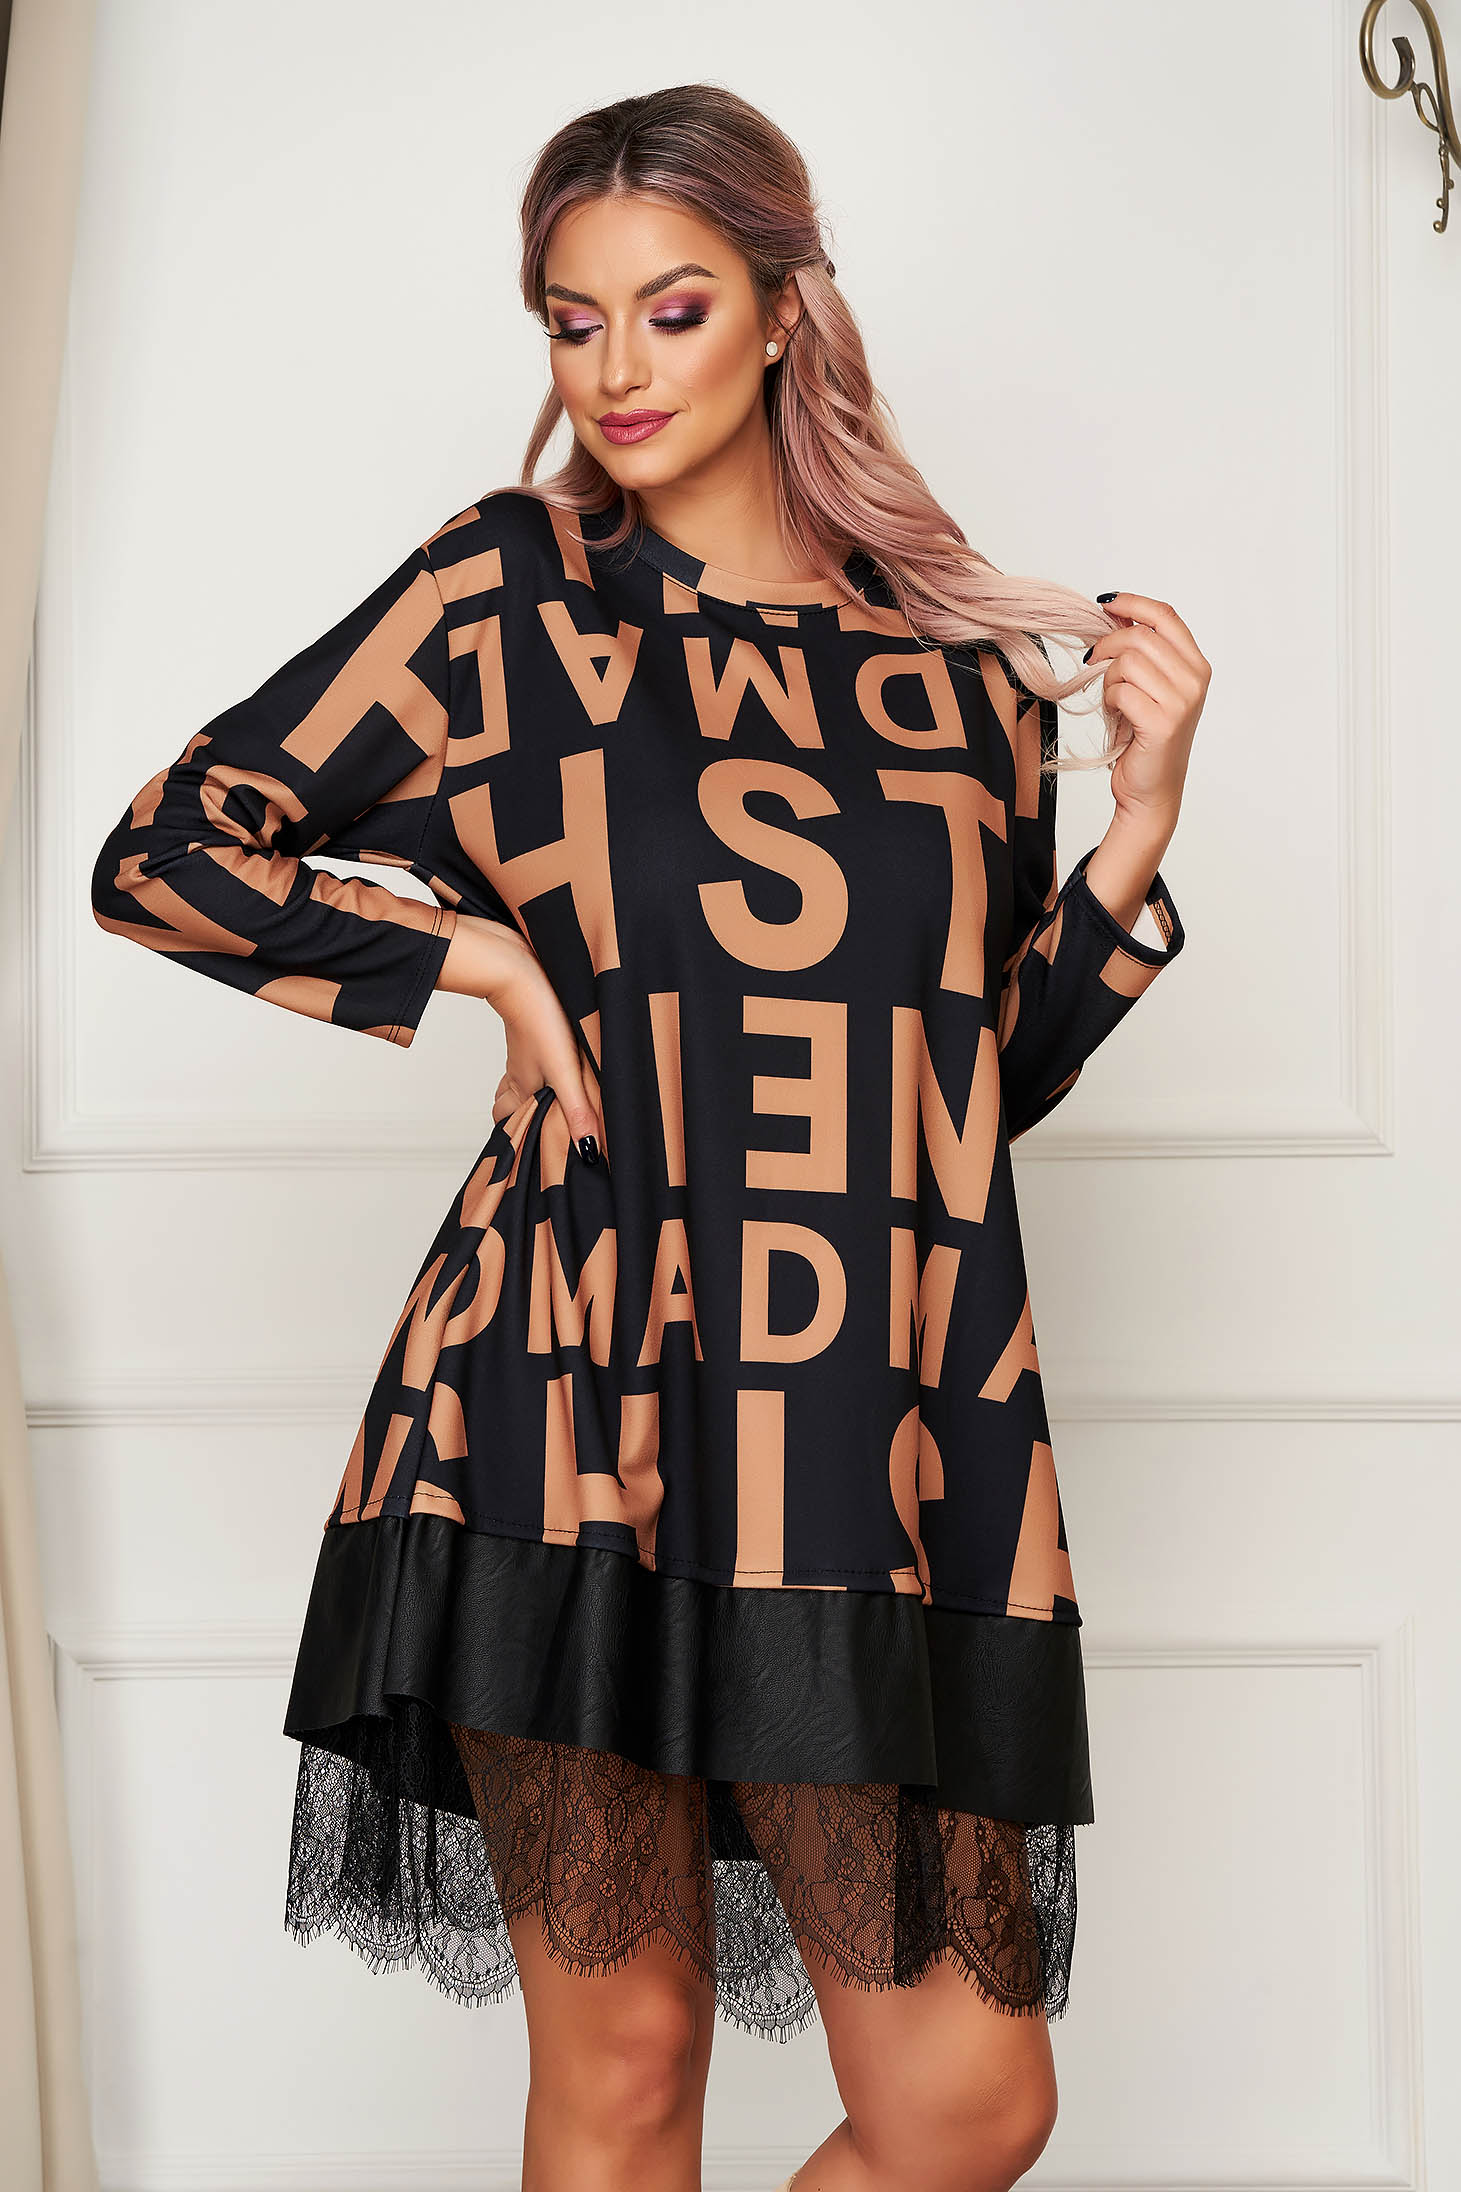 Brown dress short cut daily flared with faux leather details with lace details